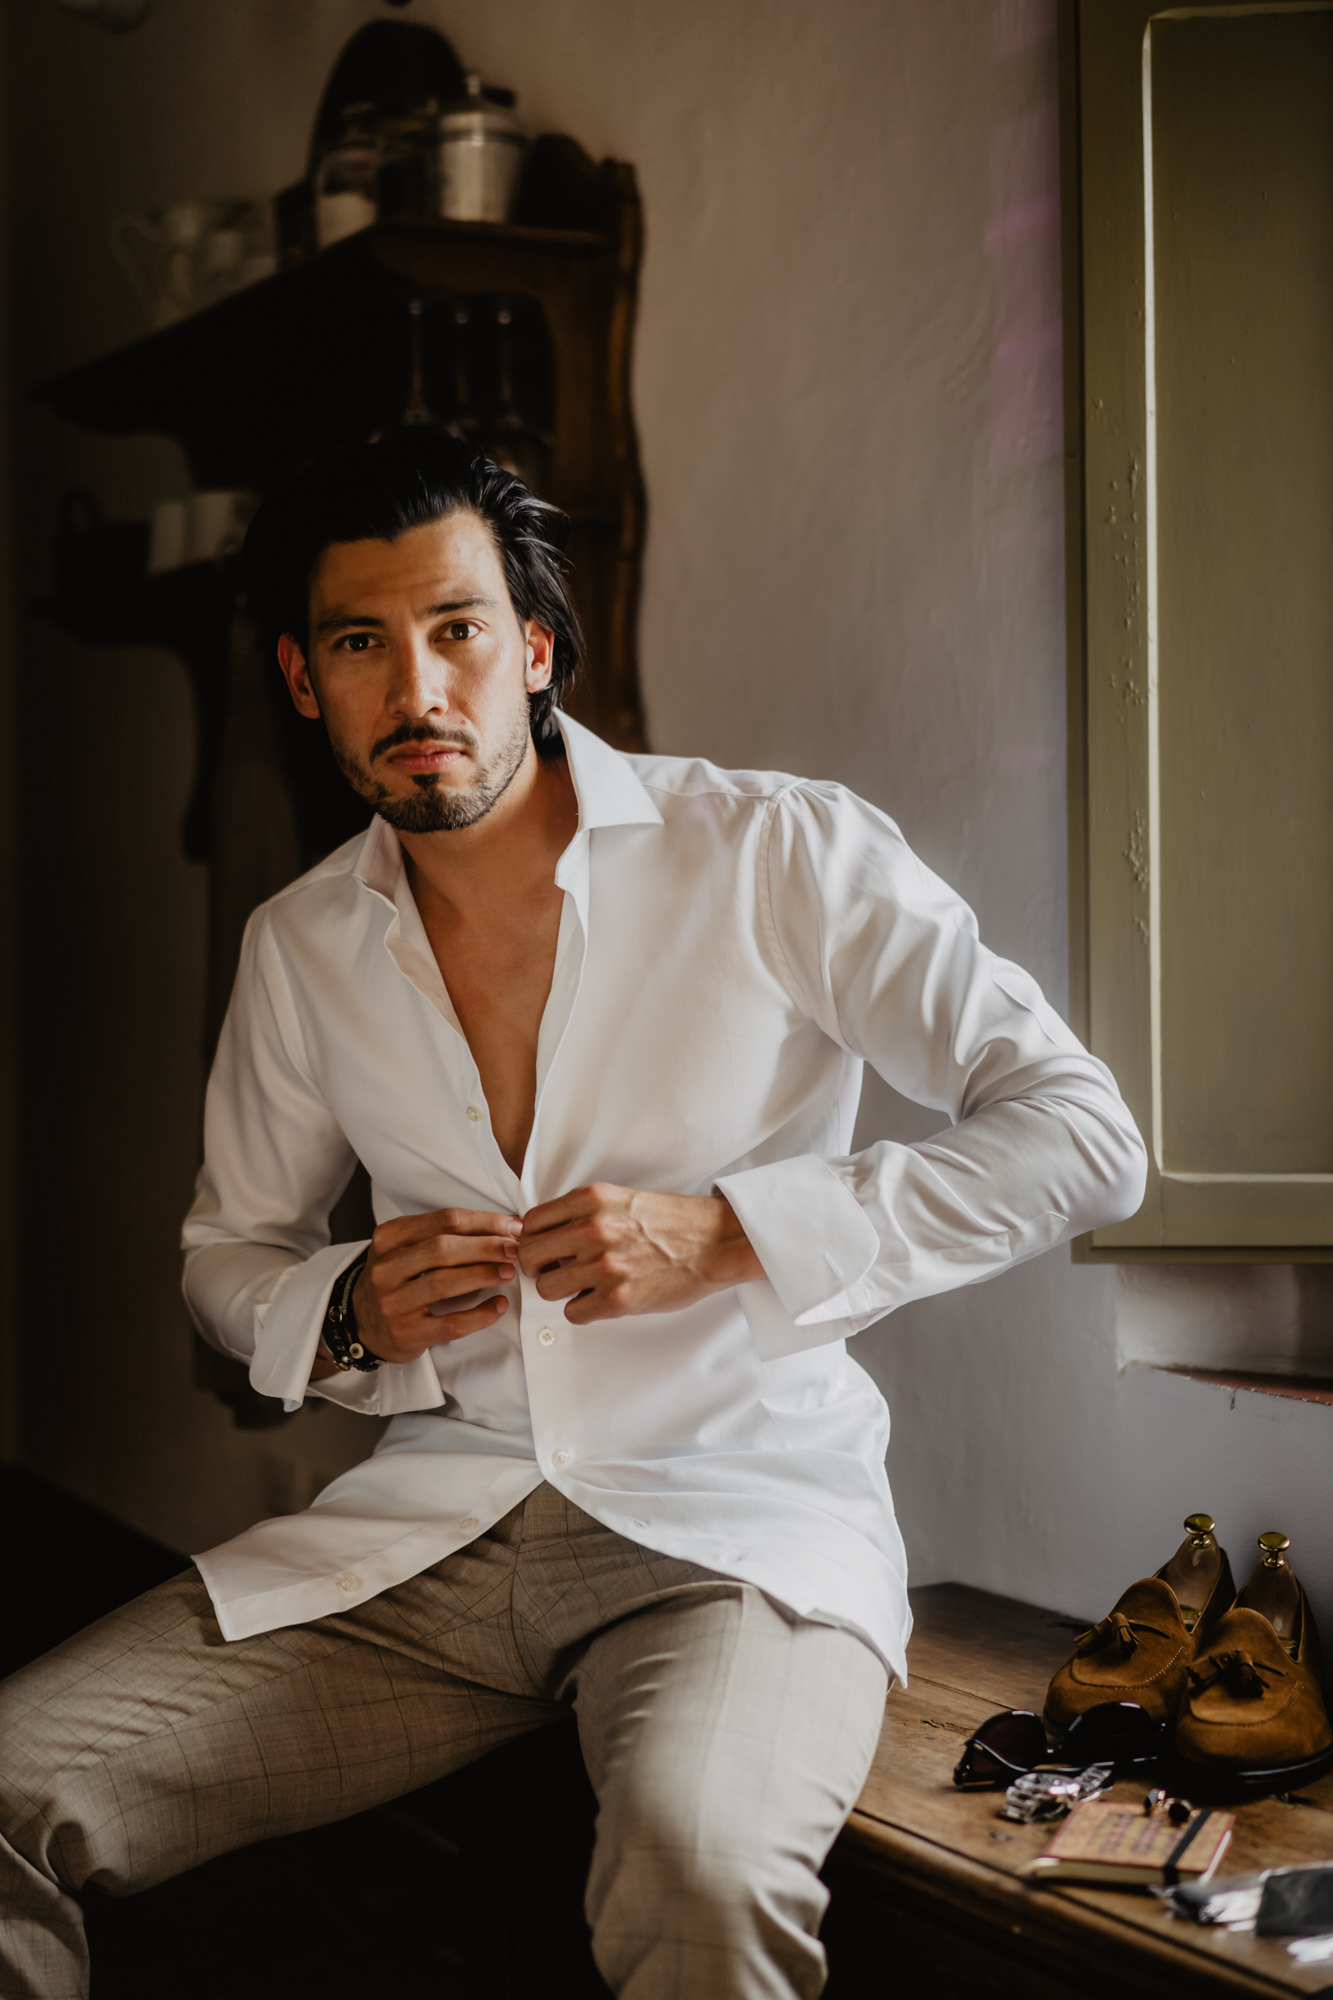 italian-groom-gets-ready-white-dress-shirt-checked-taupe-silk-pants-worlds-best-wedding-photos-david-bastianoni-italy-wedding-photographers